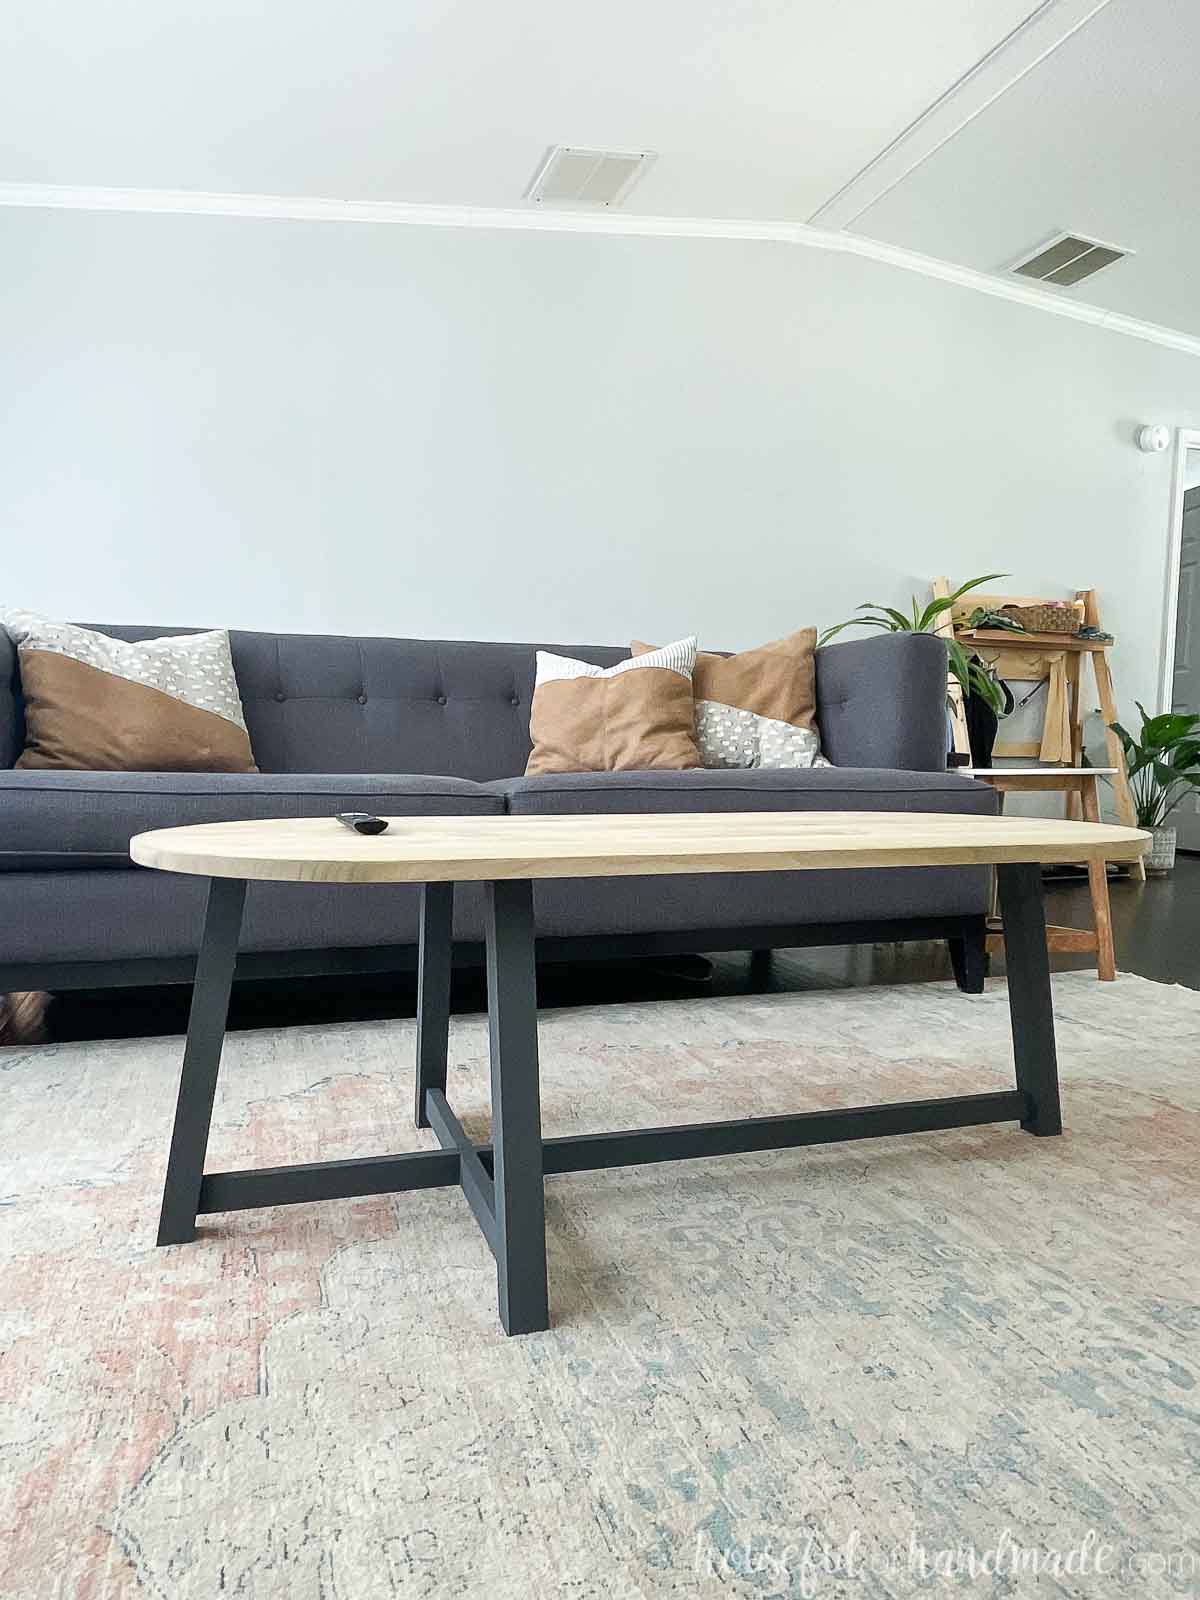 Asymmetrical coffee table with charcoal painted base and light stained wood rounded top in a living room.